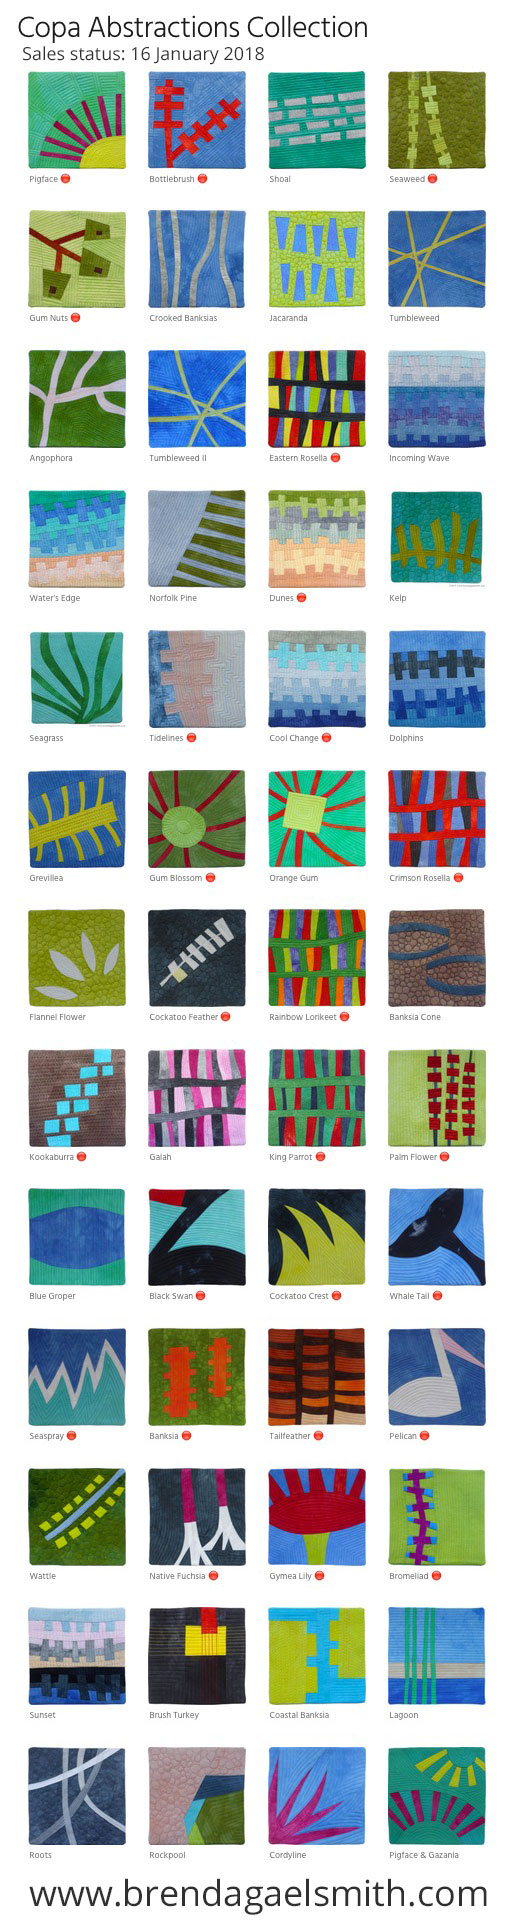 Copa Abstractions - textile sketches by Brenda Gael Smith for sale